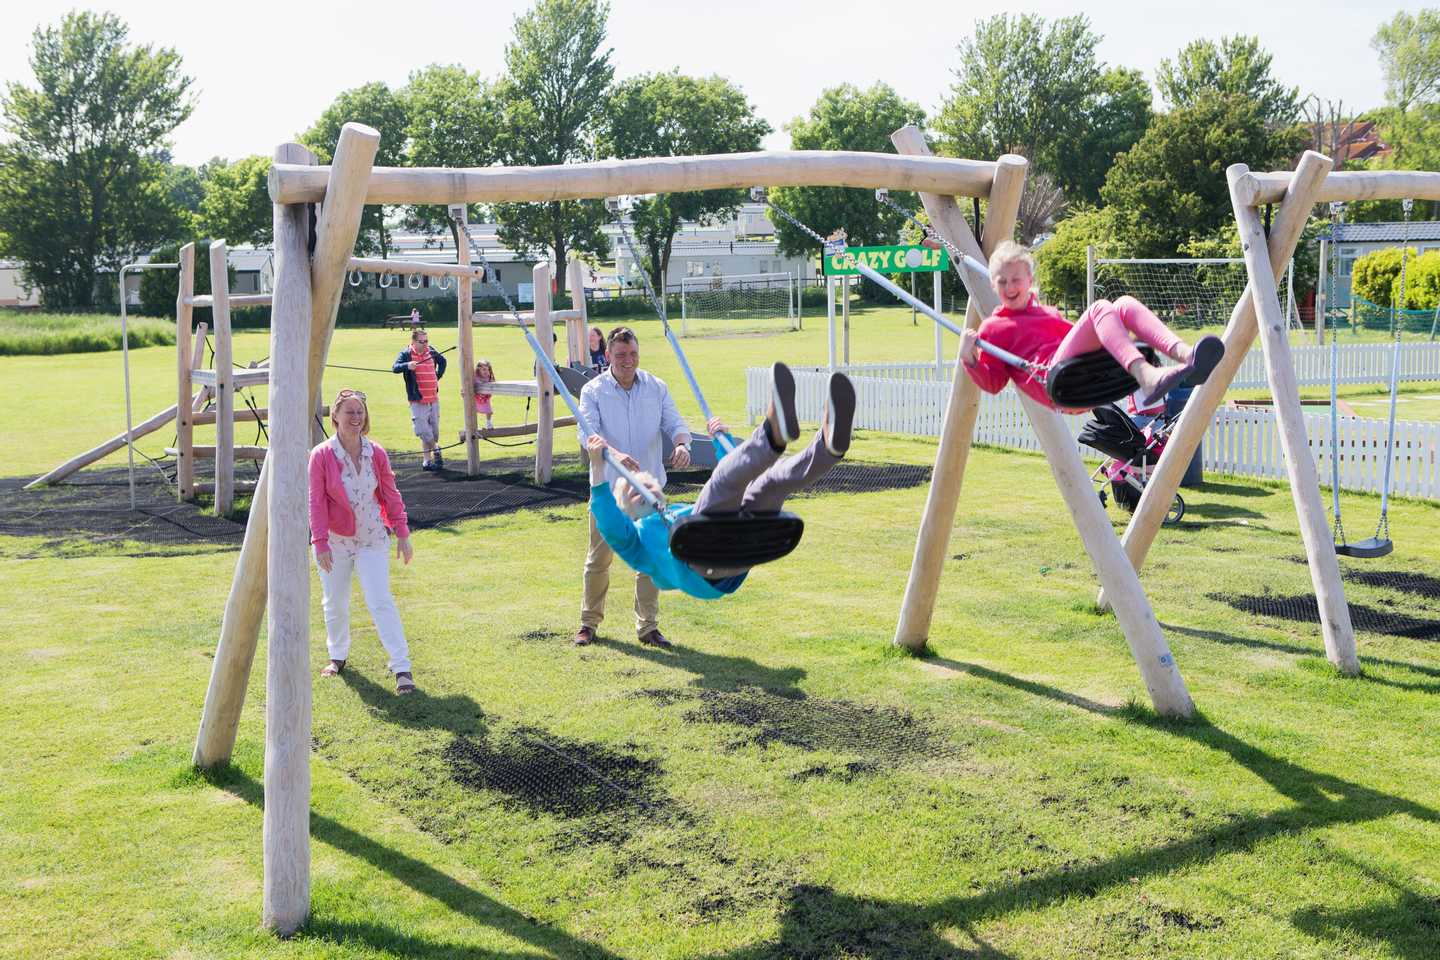 Children swinging in the play area